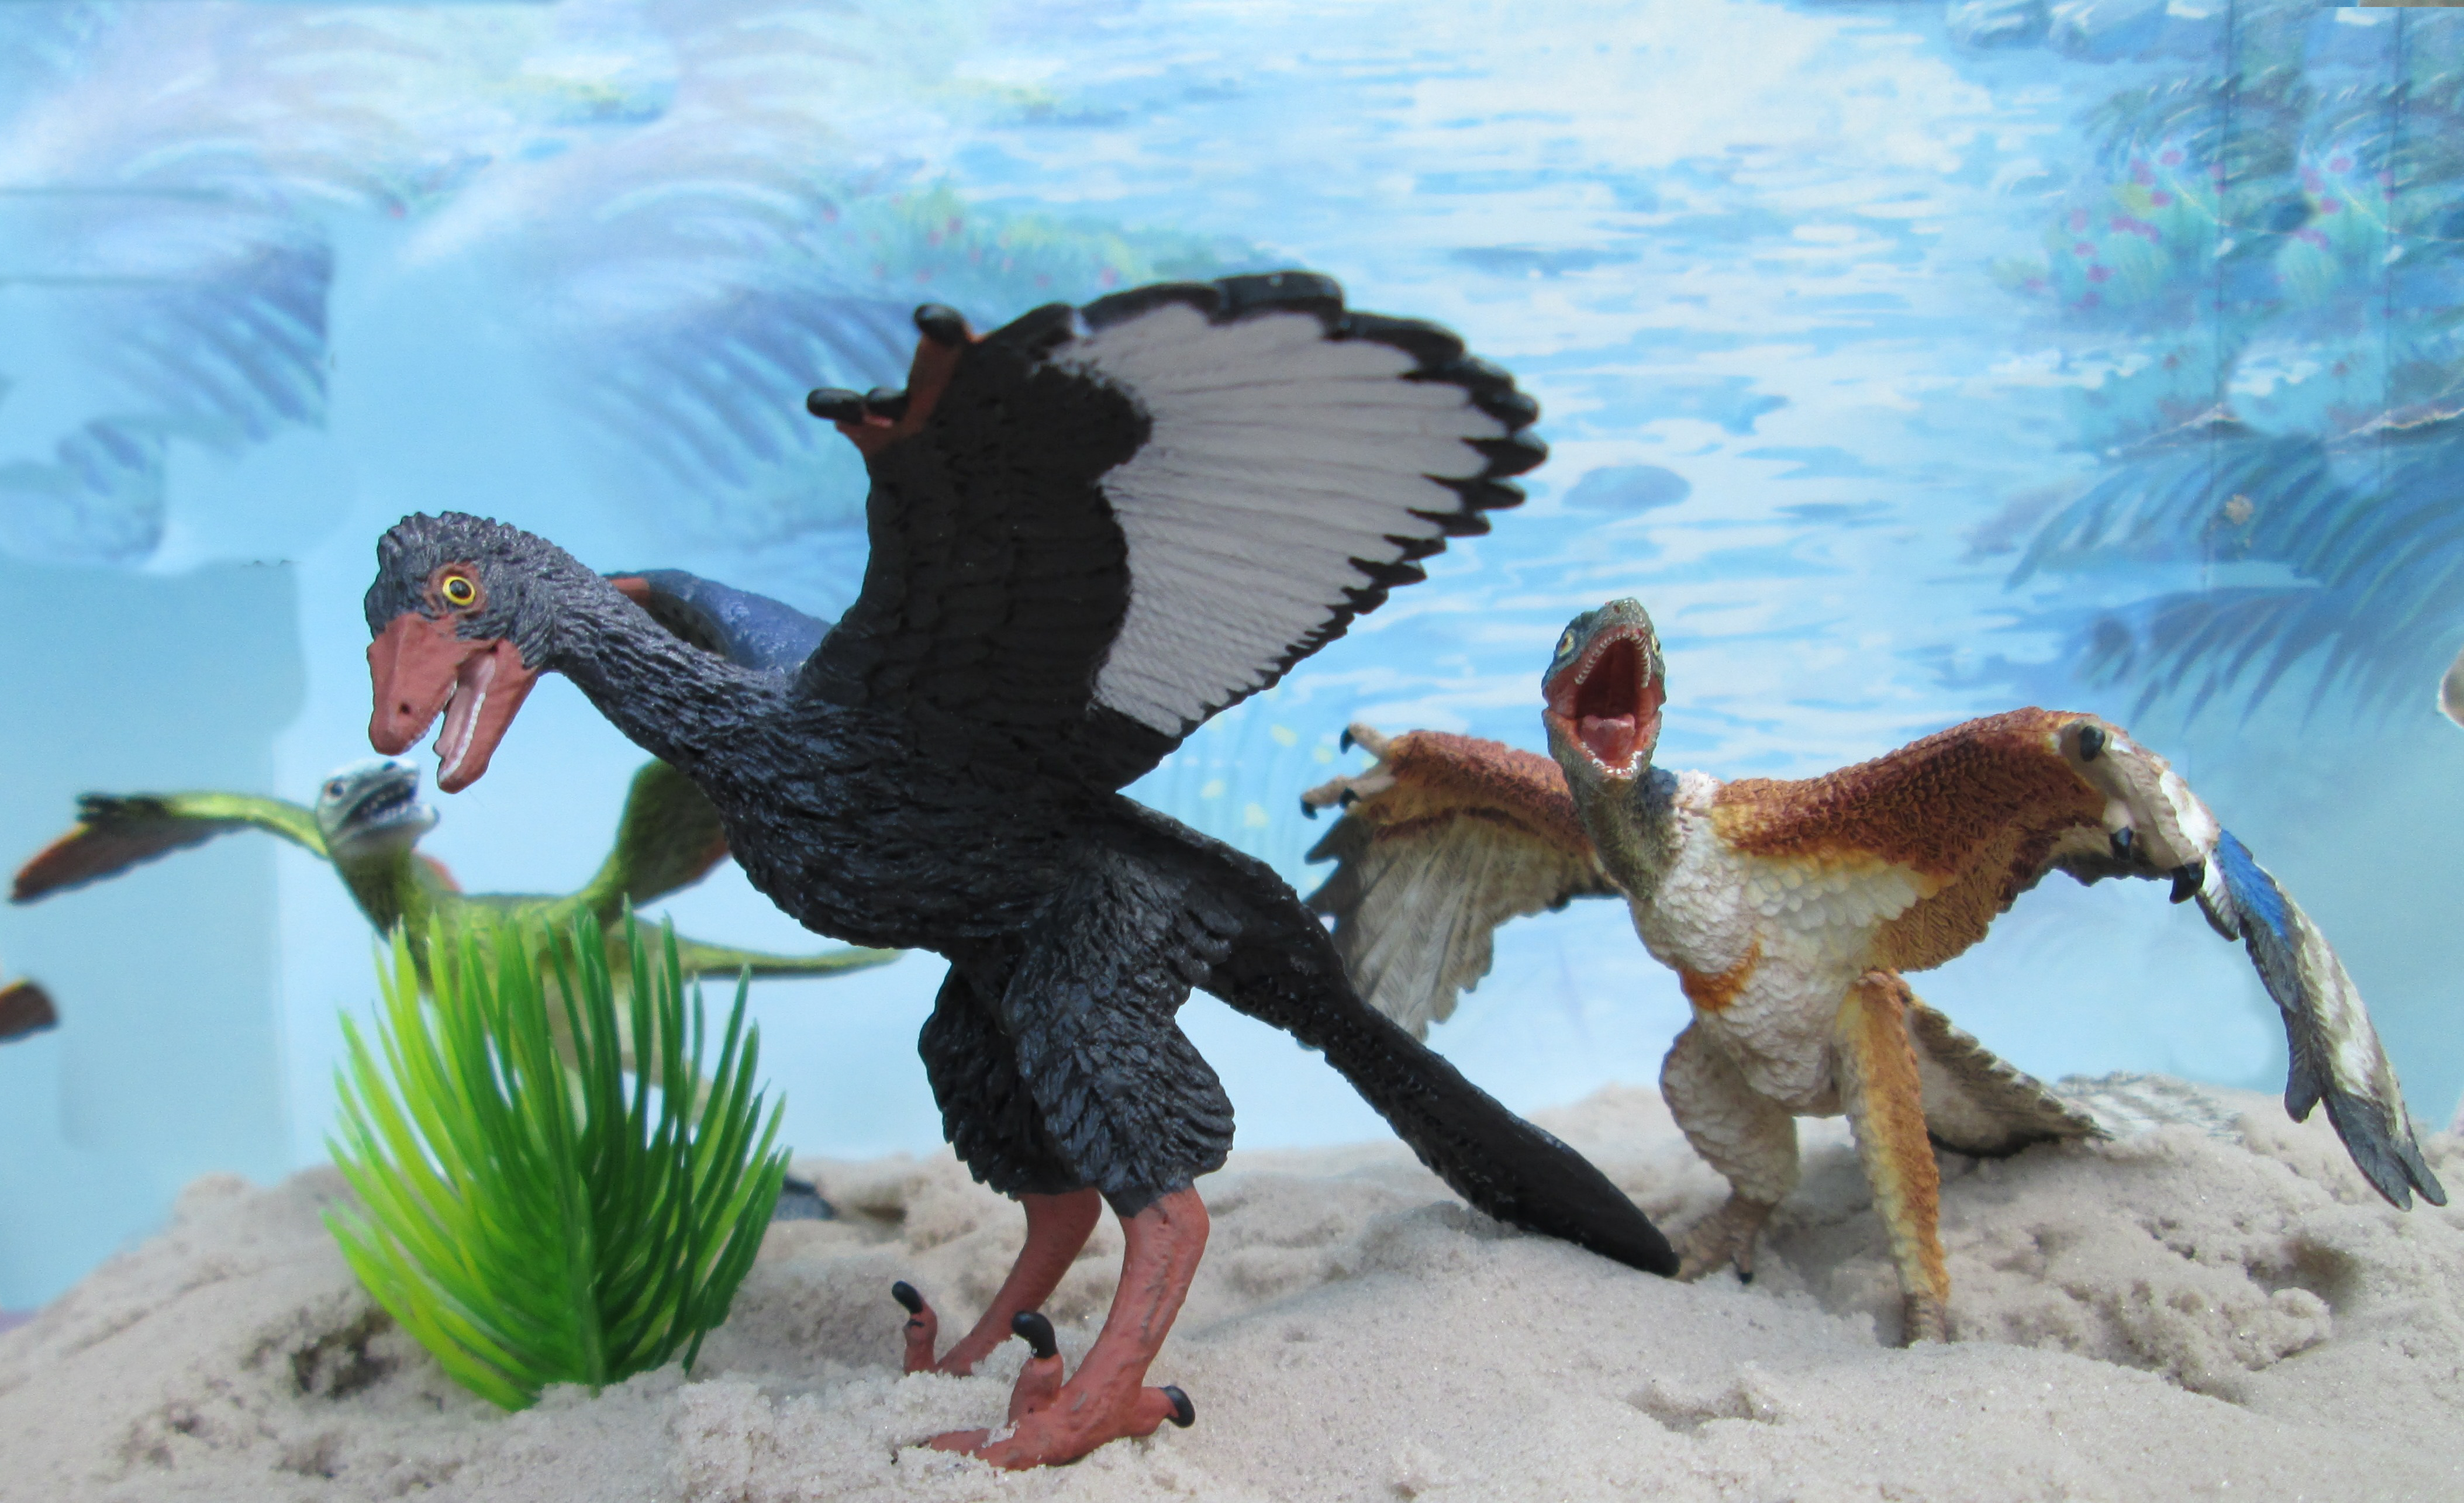 Archaeopteryx Wild Safari, Bullyland and Papo